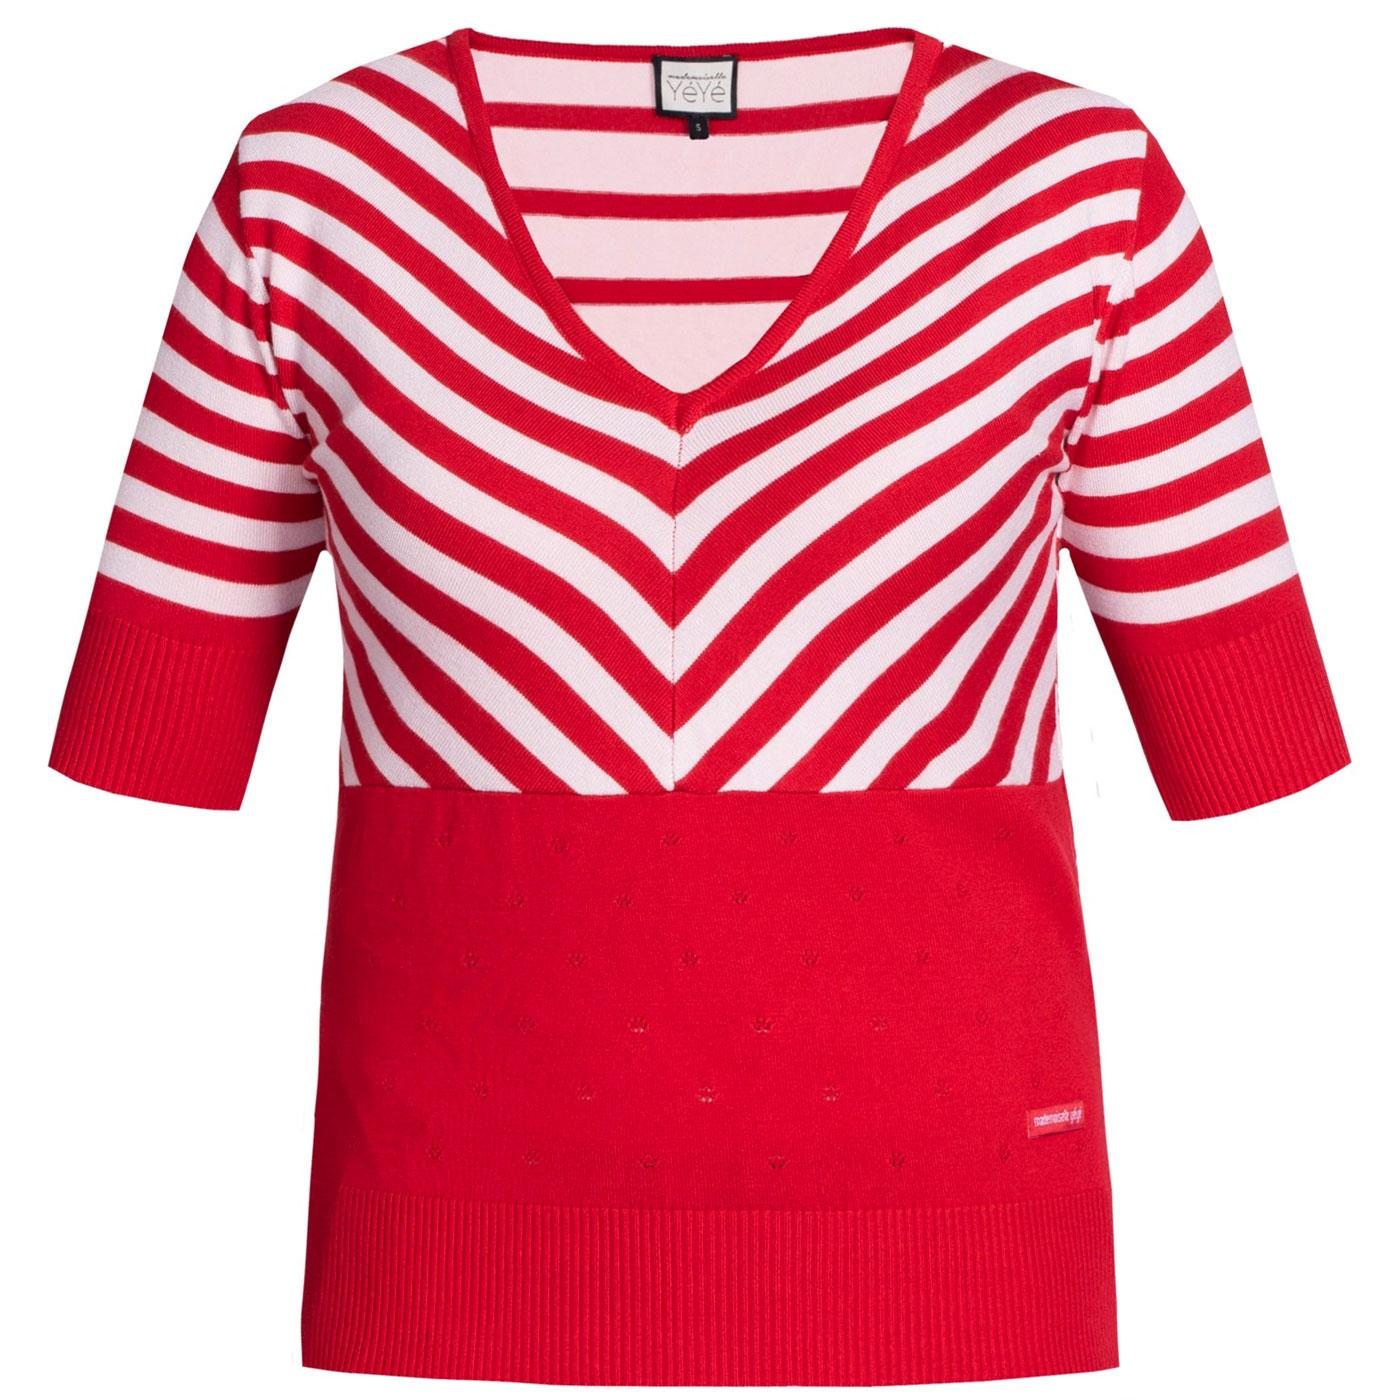 Stripes Lover MADEMOISELLE YEYE Retro 60s Top Red